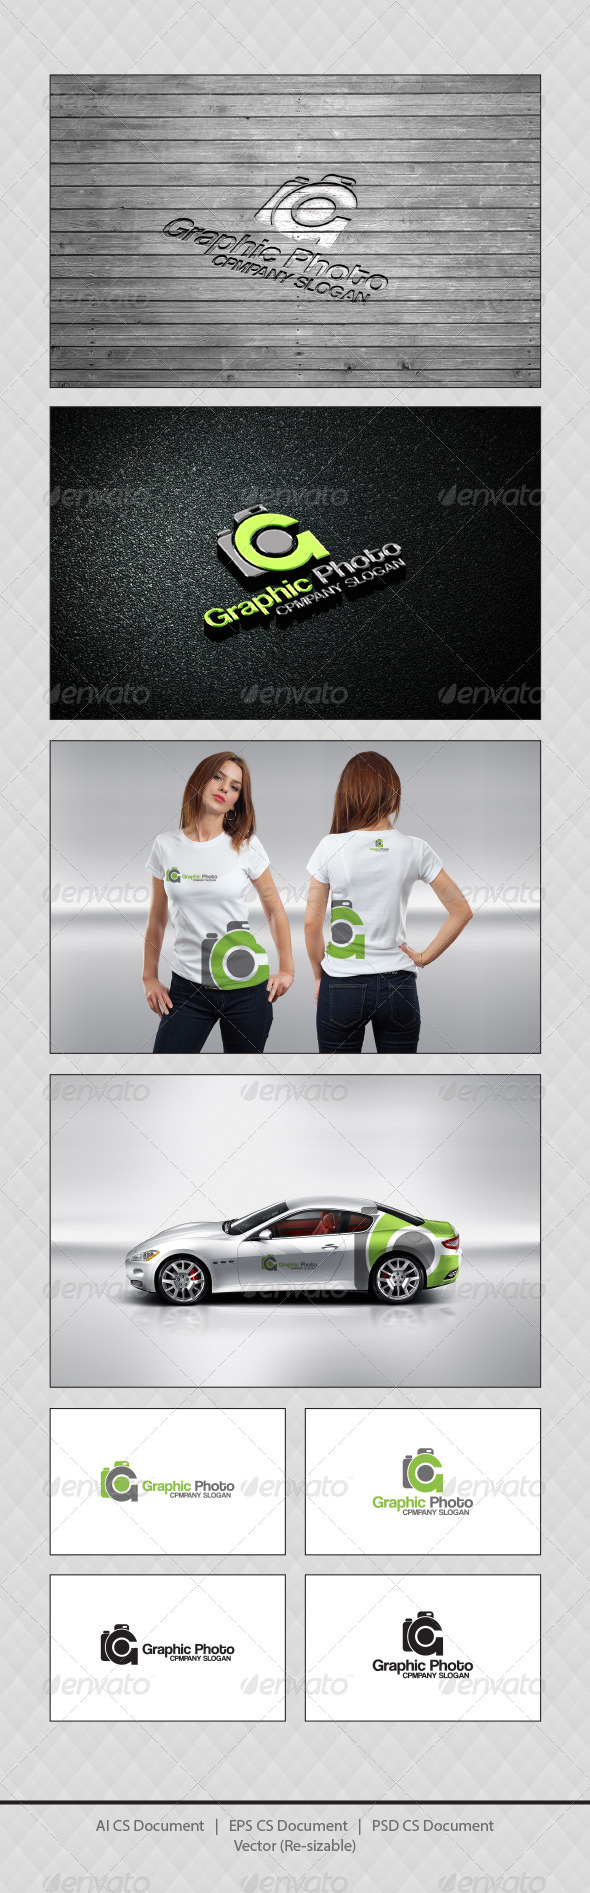 GraphicRiver Graphic Photo G Logo Templates 4406860